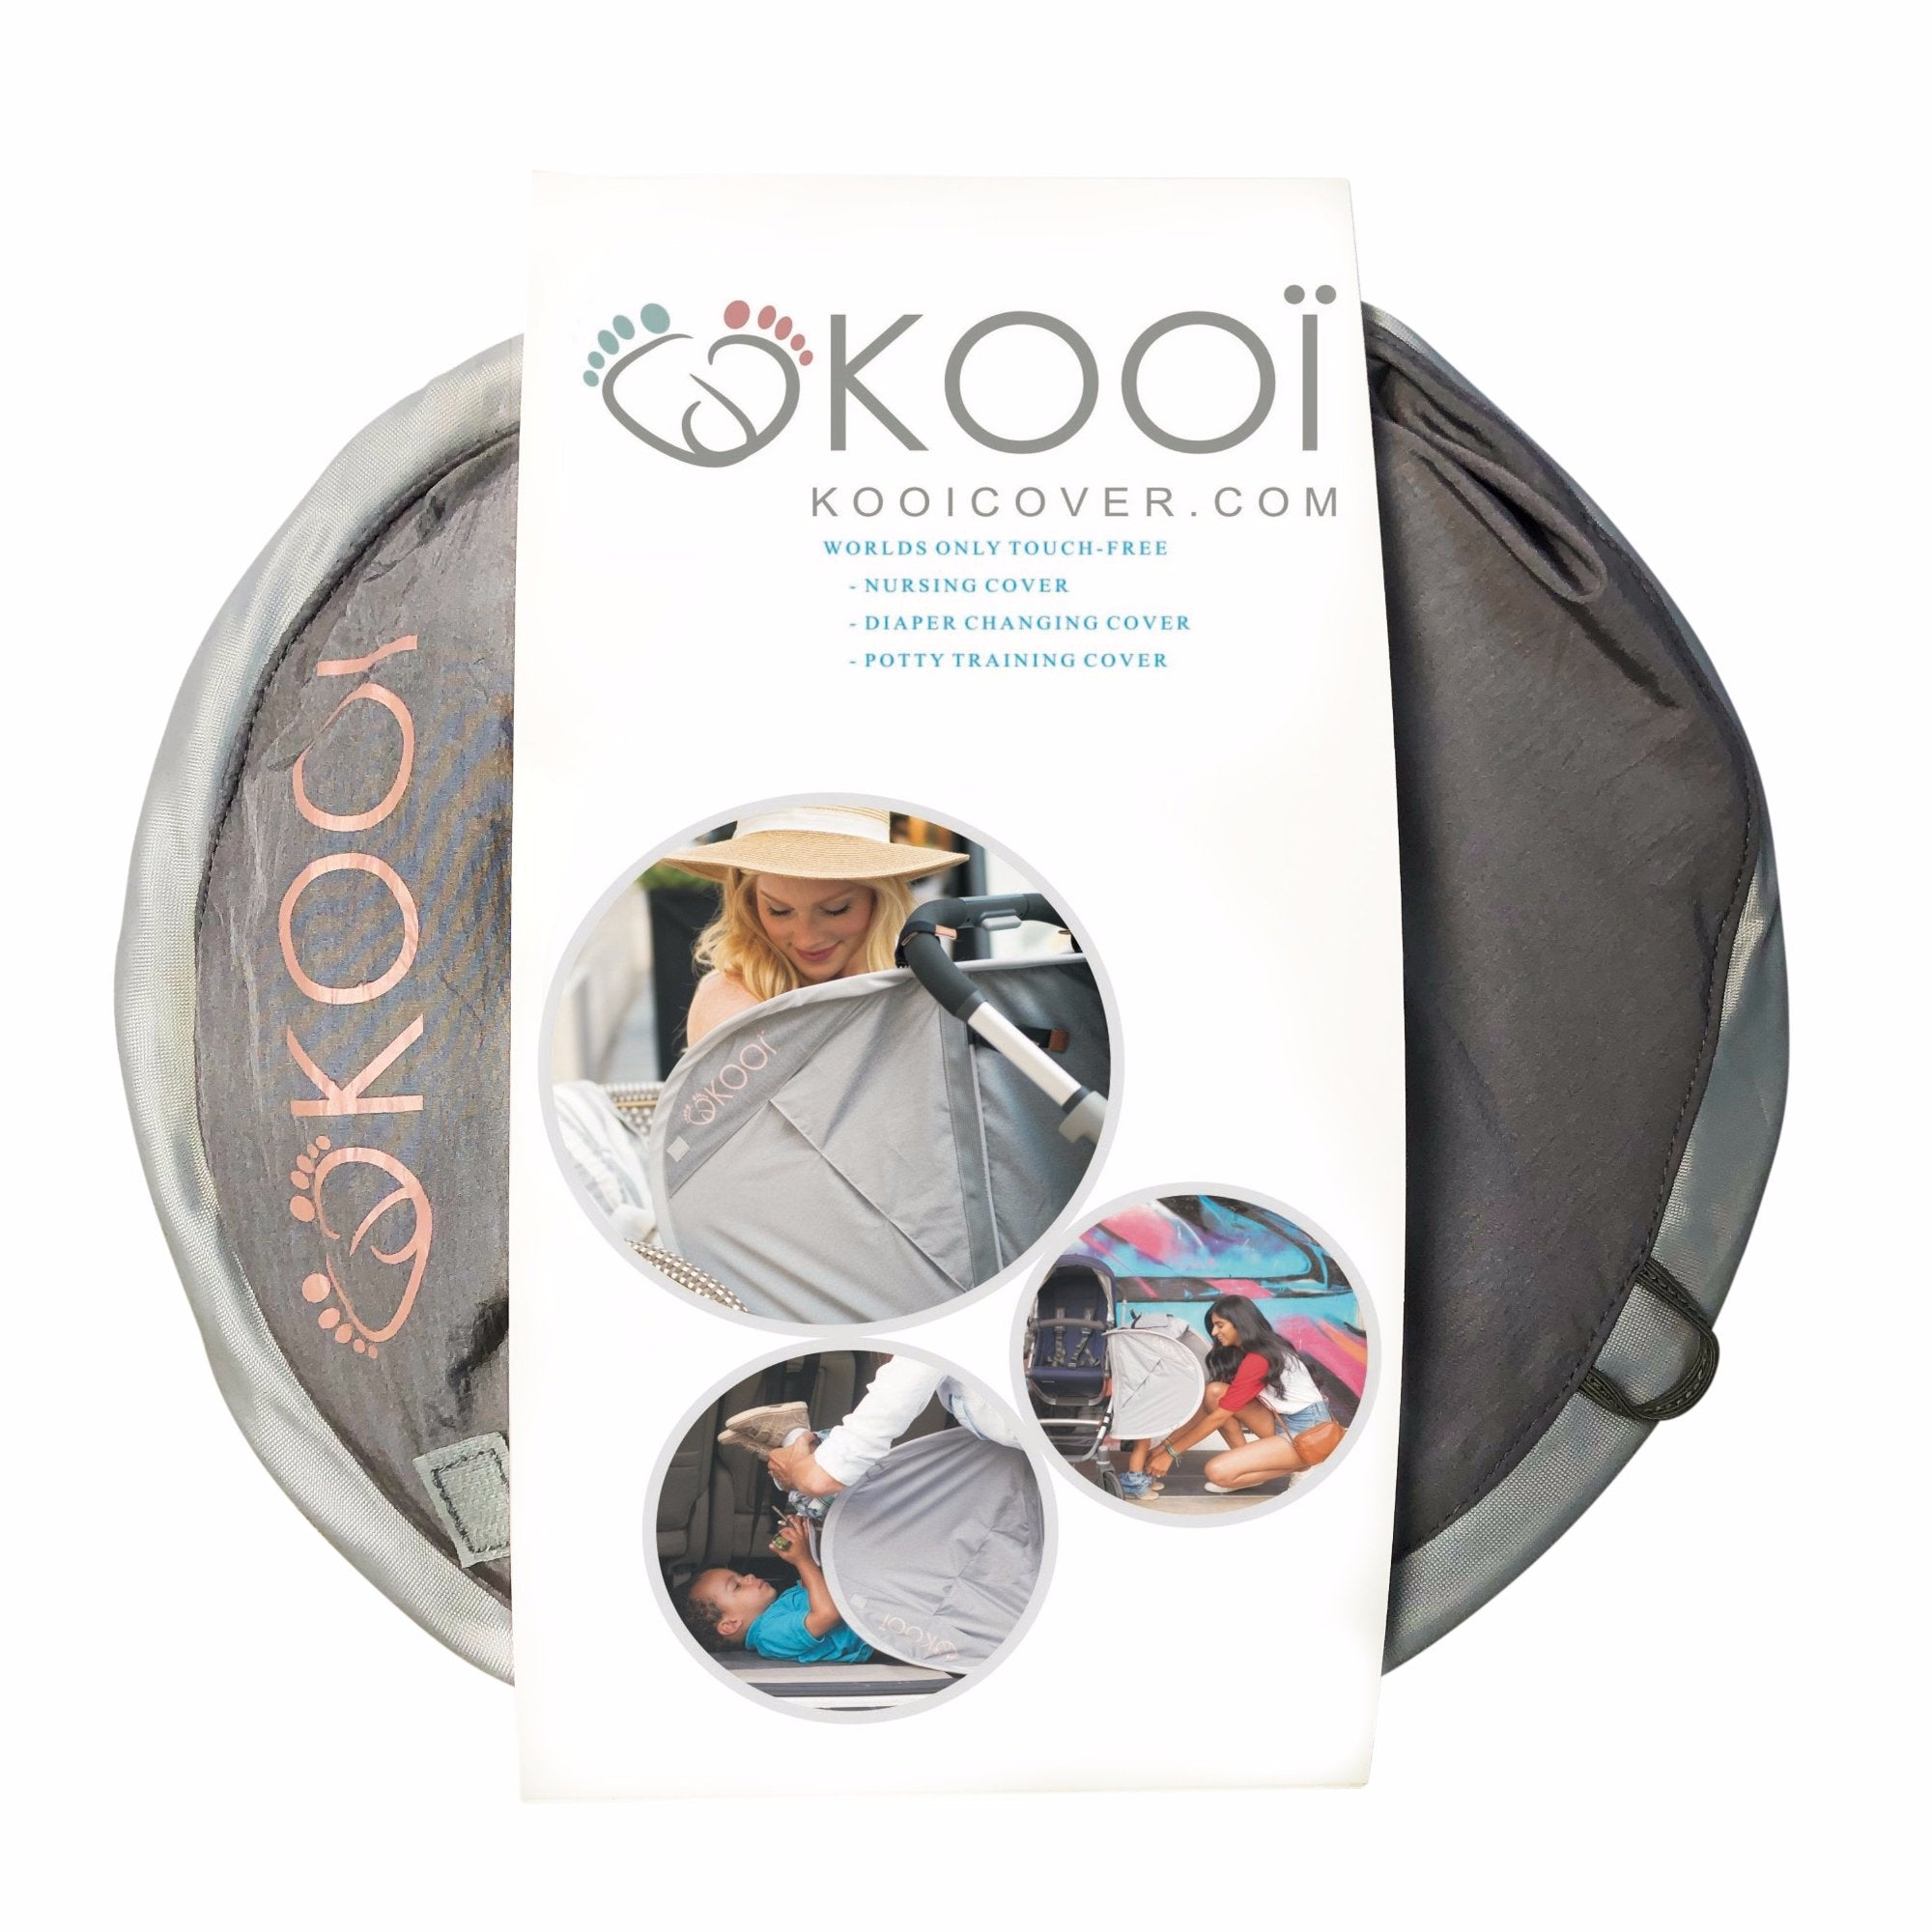 KOOÏ COVER no-touch nursing cover, diaper changing, potty training cover, swimsuit change cover